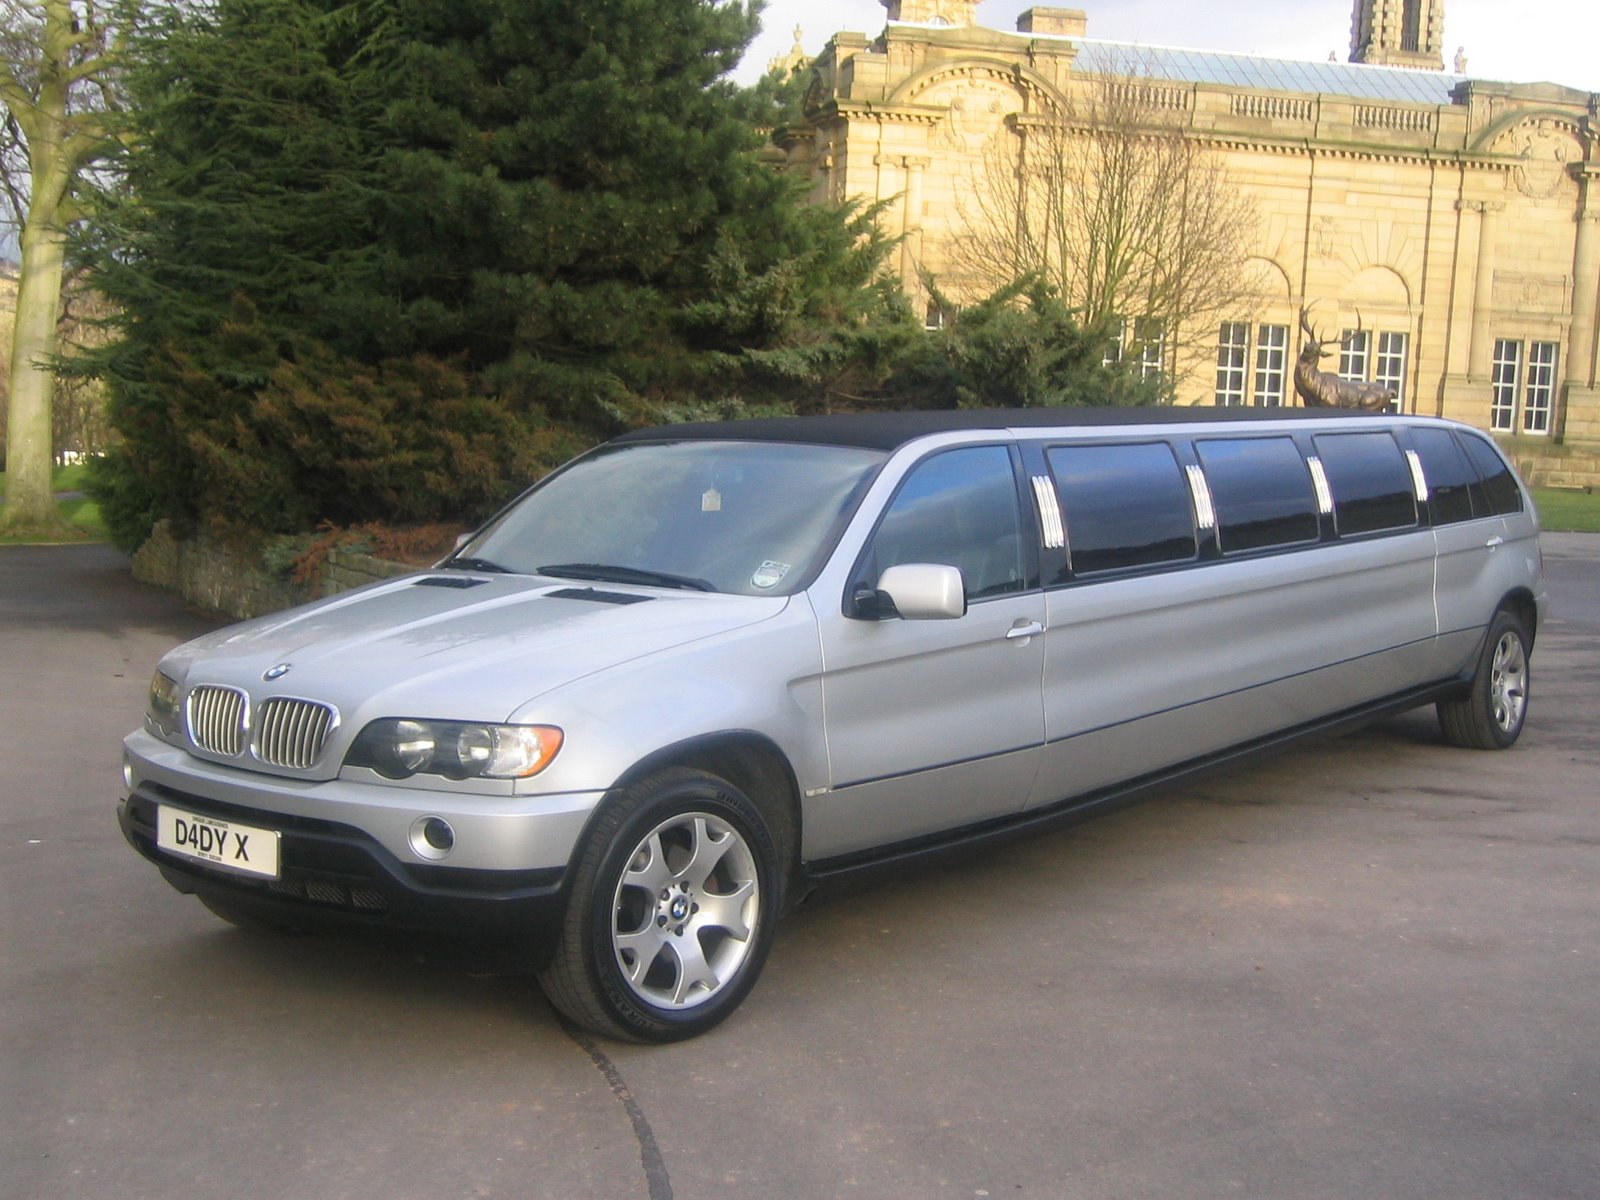 limousine car lincoln car